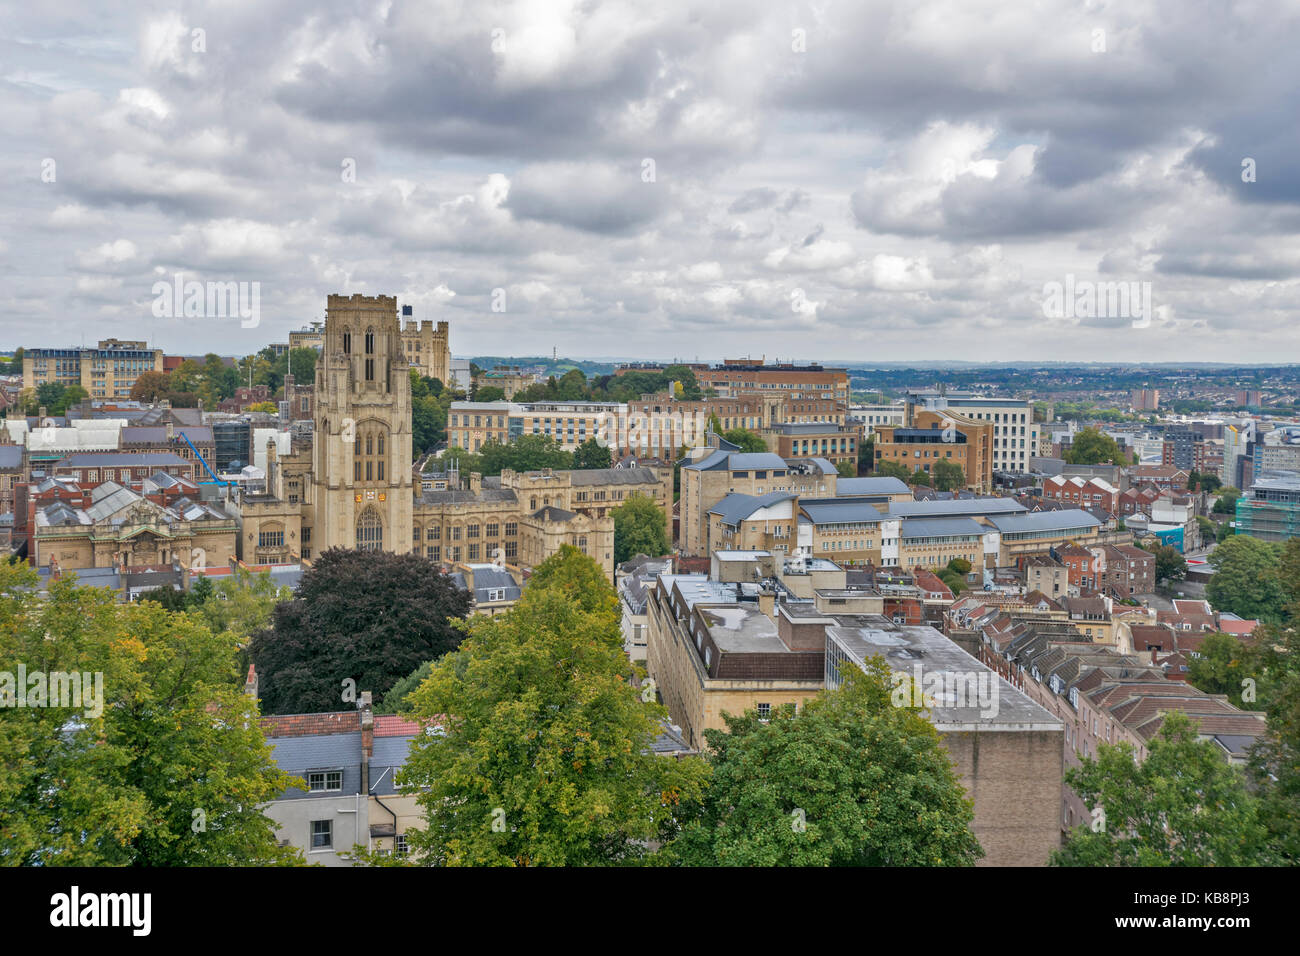 BRISTOL ENGLAND CITY CENTRE CABOT TOWER BRANDON HILL VIEW TO WILLS MEMORIAL BUILDING AND THE UNIVERSITY MEDICAL - Stock Image